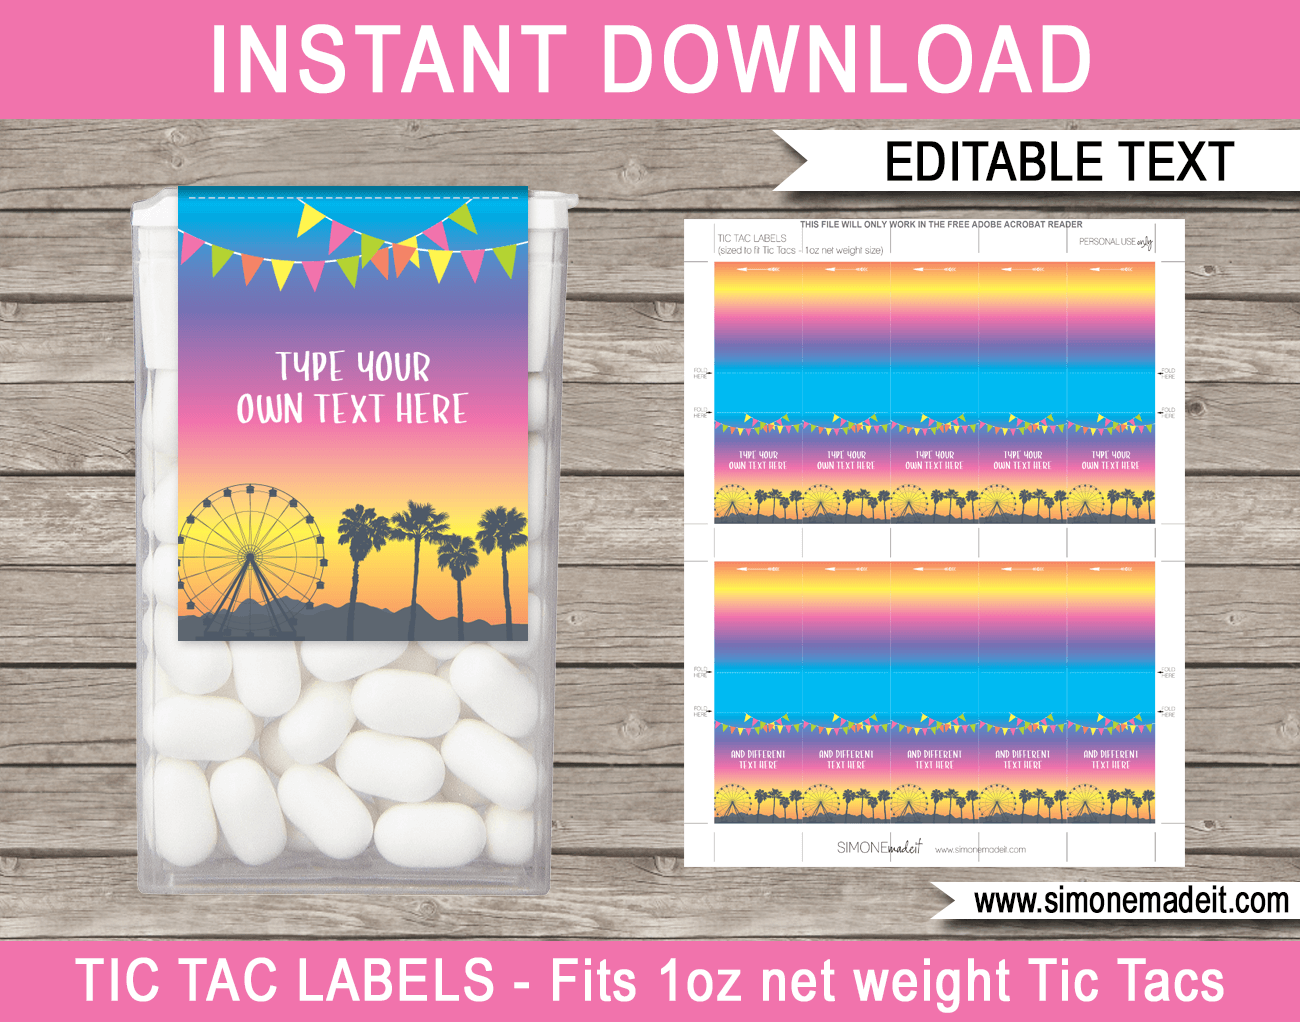 Coachella Party Tic Tac Labels | Coachella Inspired Birthday Party Favors | Editable & Printable Template | Instant Download via simonemadeit.com